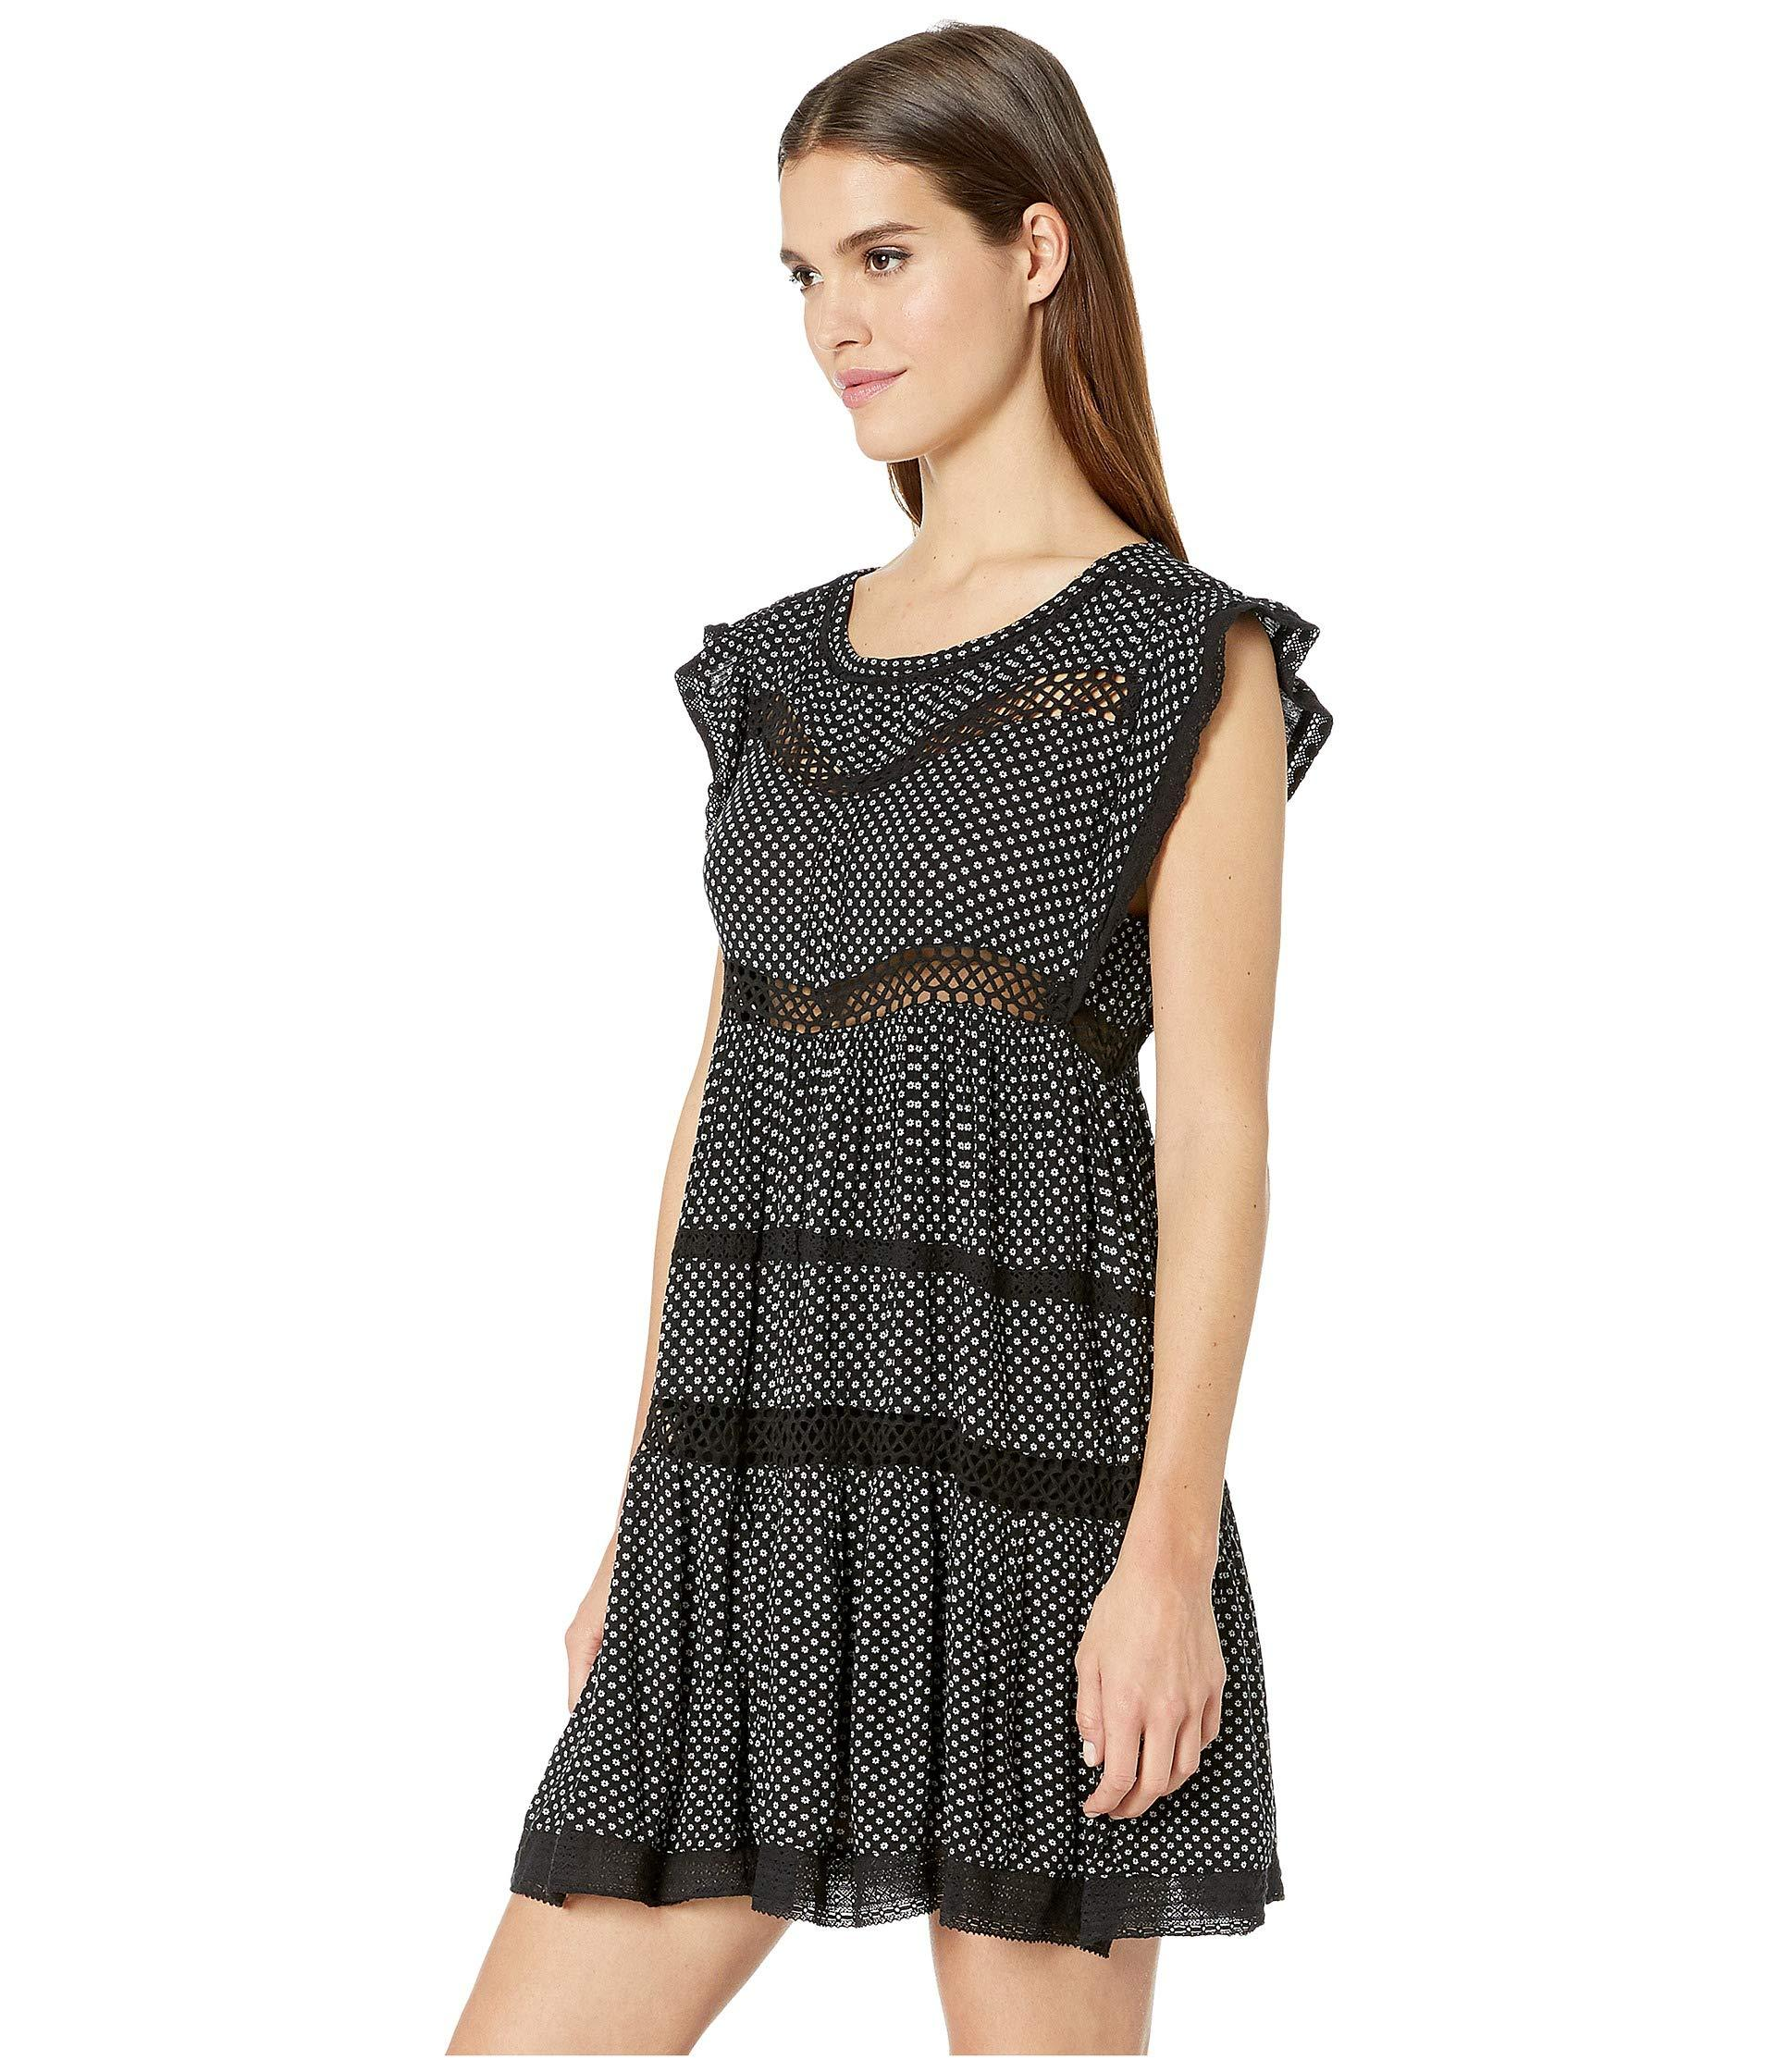 29e159567a8 Lyst - Free People Retro Kitty Dress (black) Women s Clothing in Black